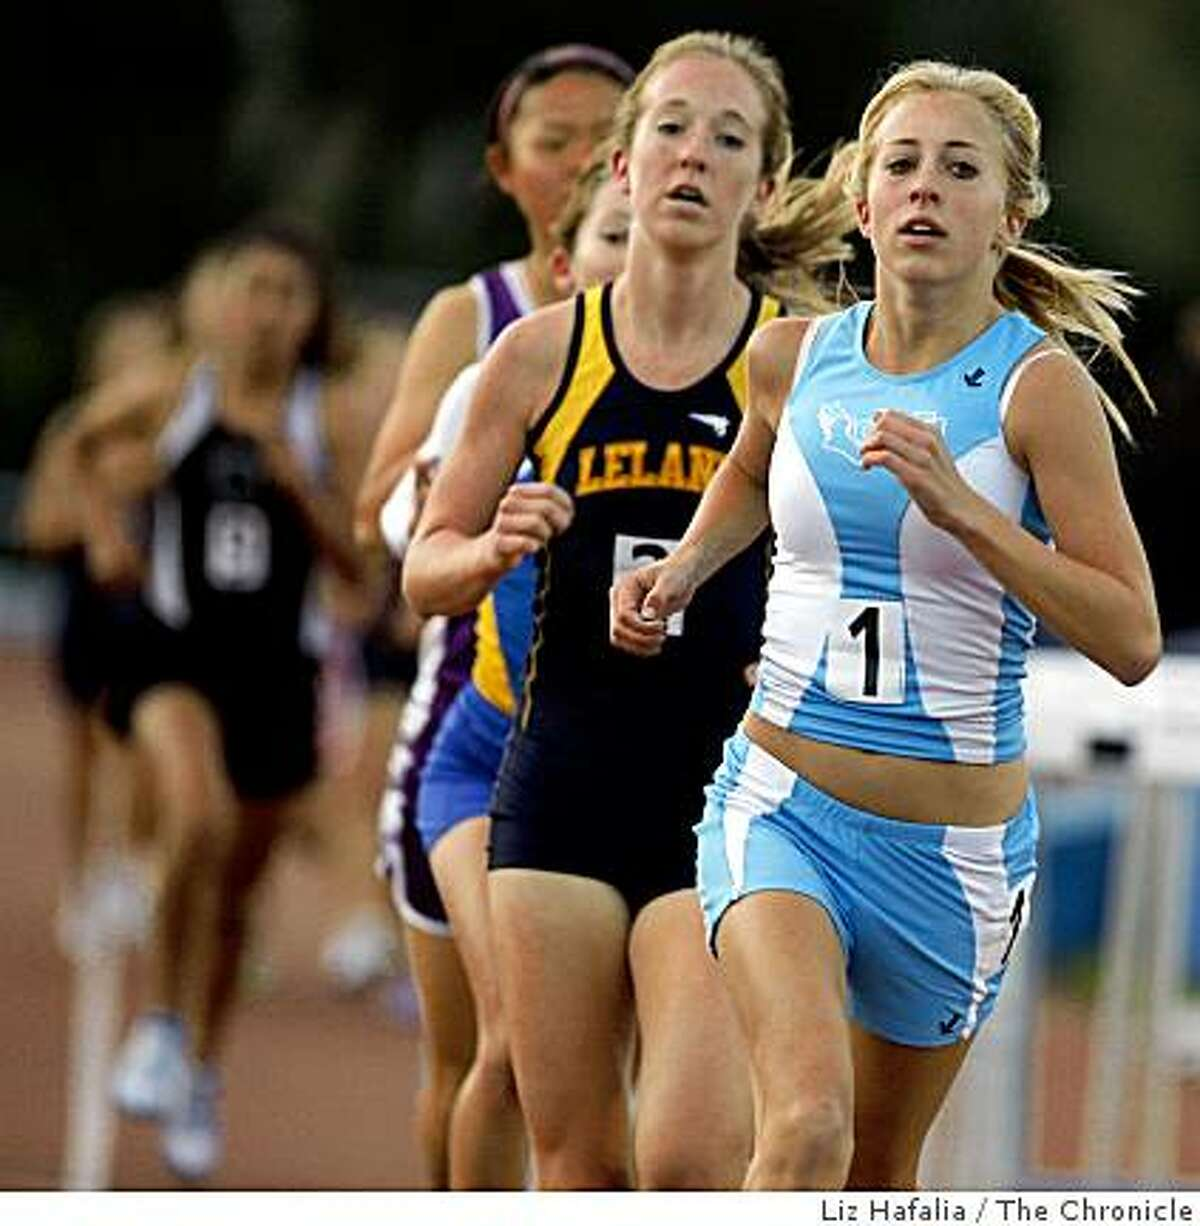 Jennifer Bergman from Valley Christian came in second during the 3200 meter run varsity in the Central Coast Section track meet at Los Gatos High School in Los Gatos, Calif., on Friday, April 24, 2009.